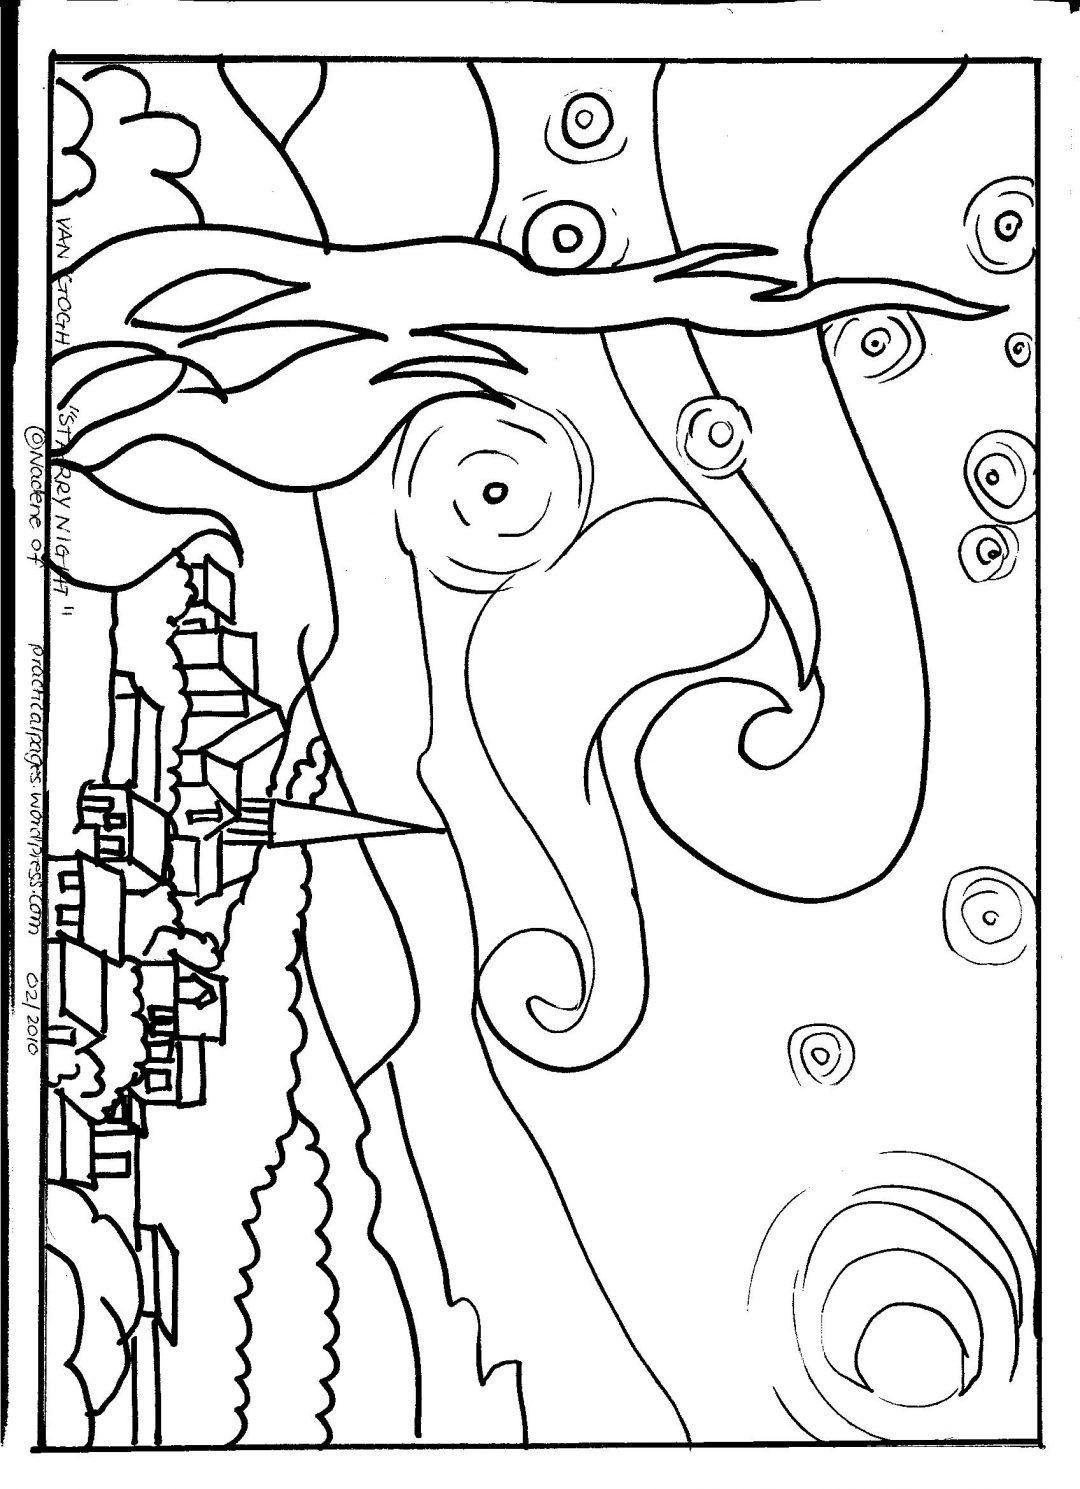 Simple Starry Night Van Gogh Coloring Pages Starry Night Art Van Gogh Coloring Starry Night Van Gogh